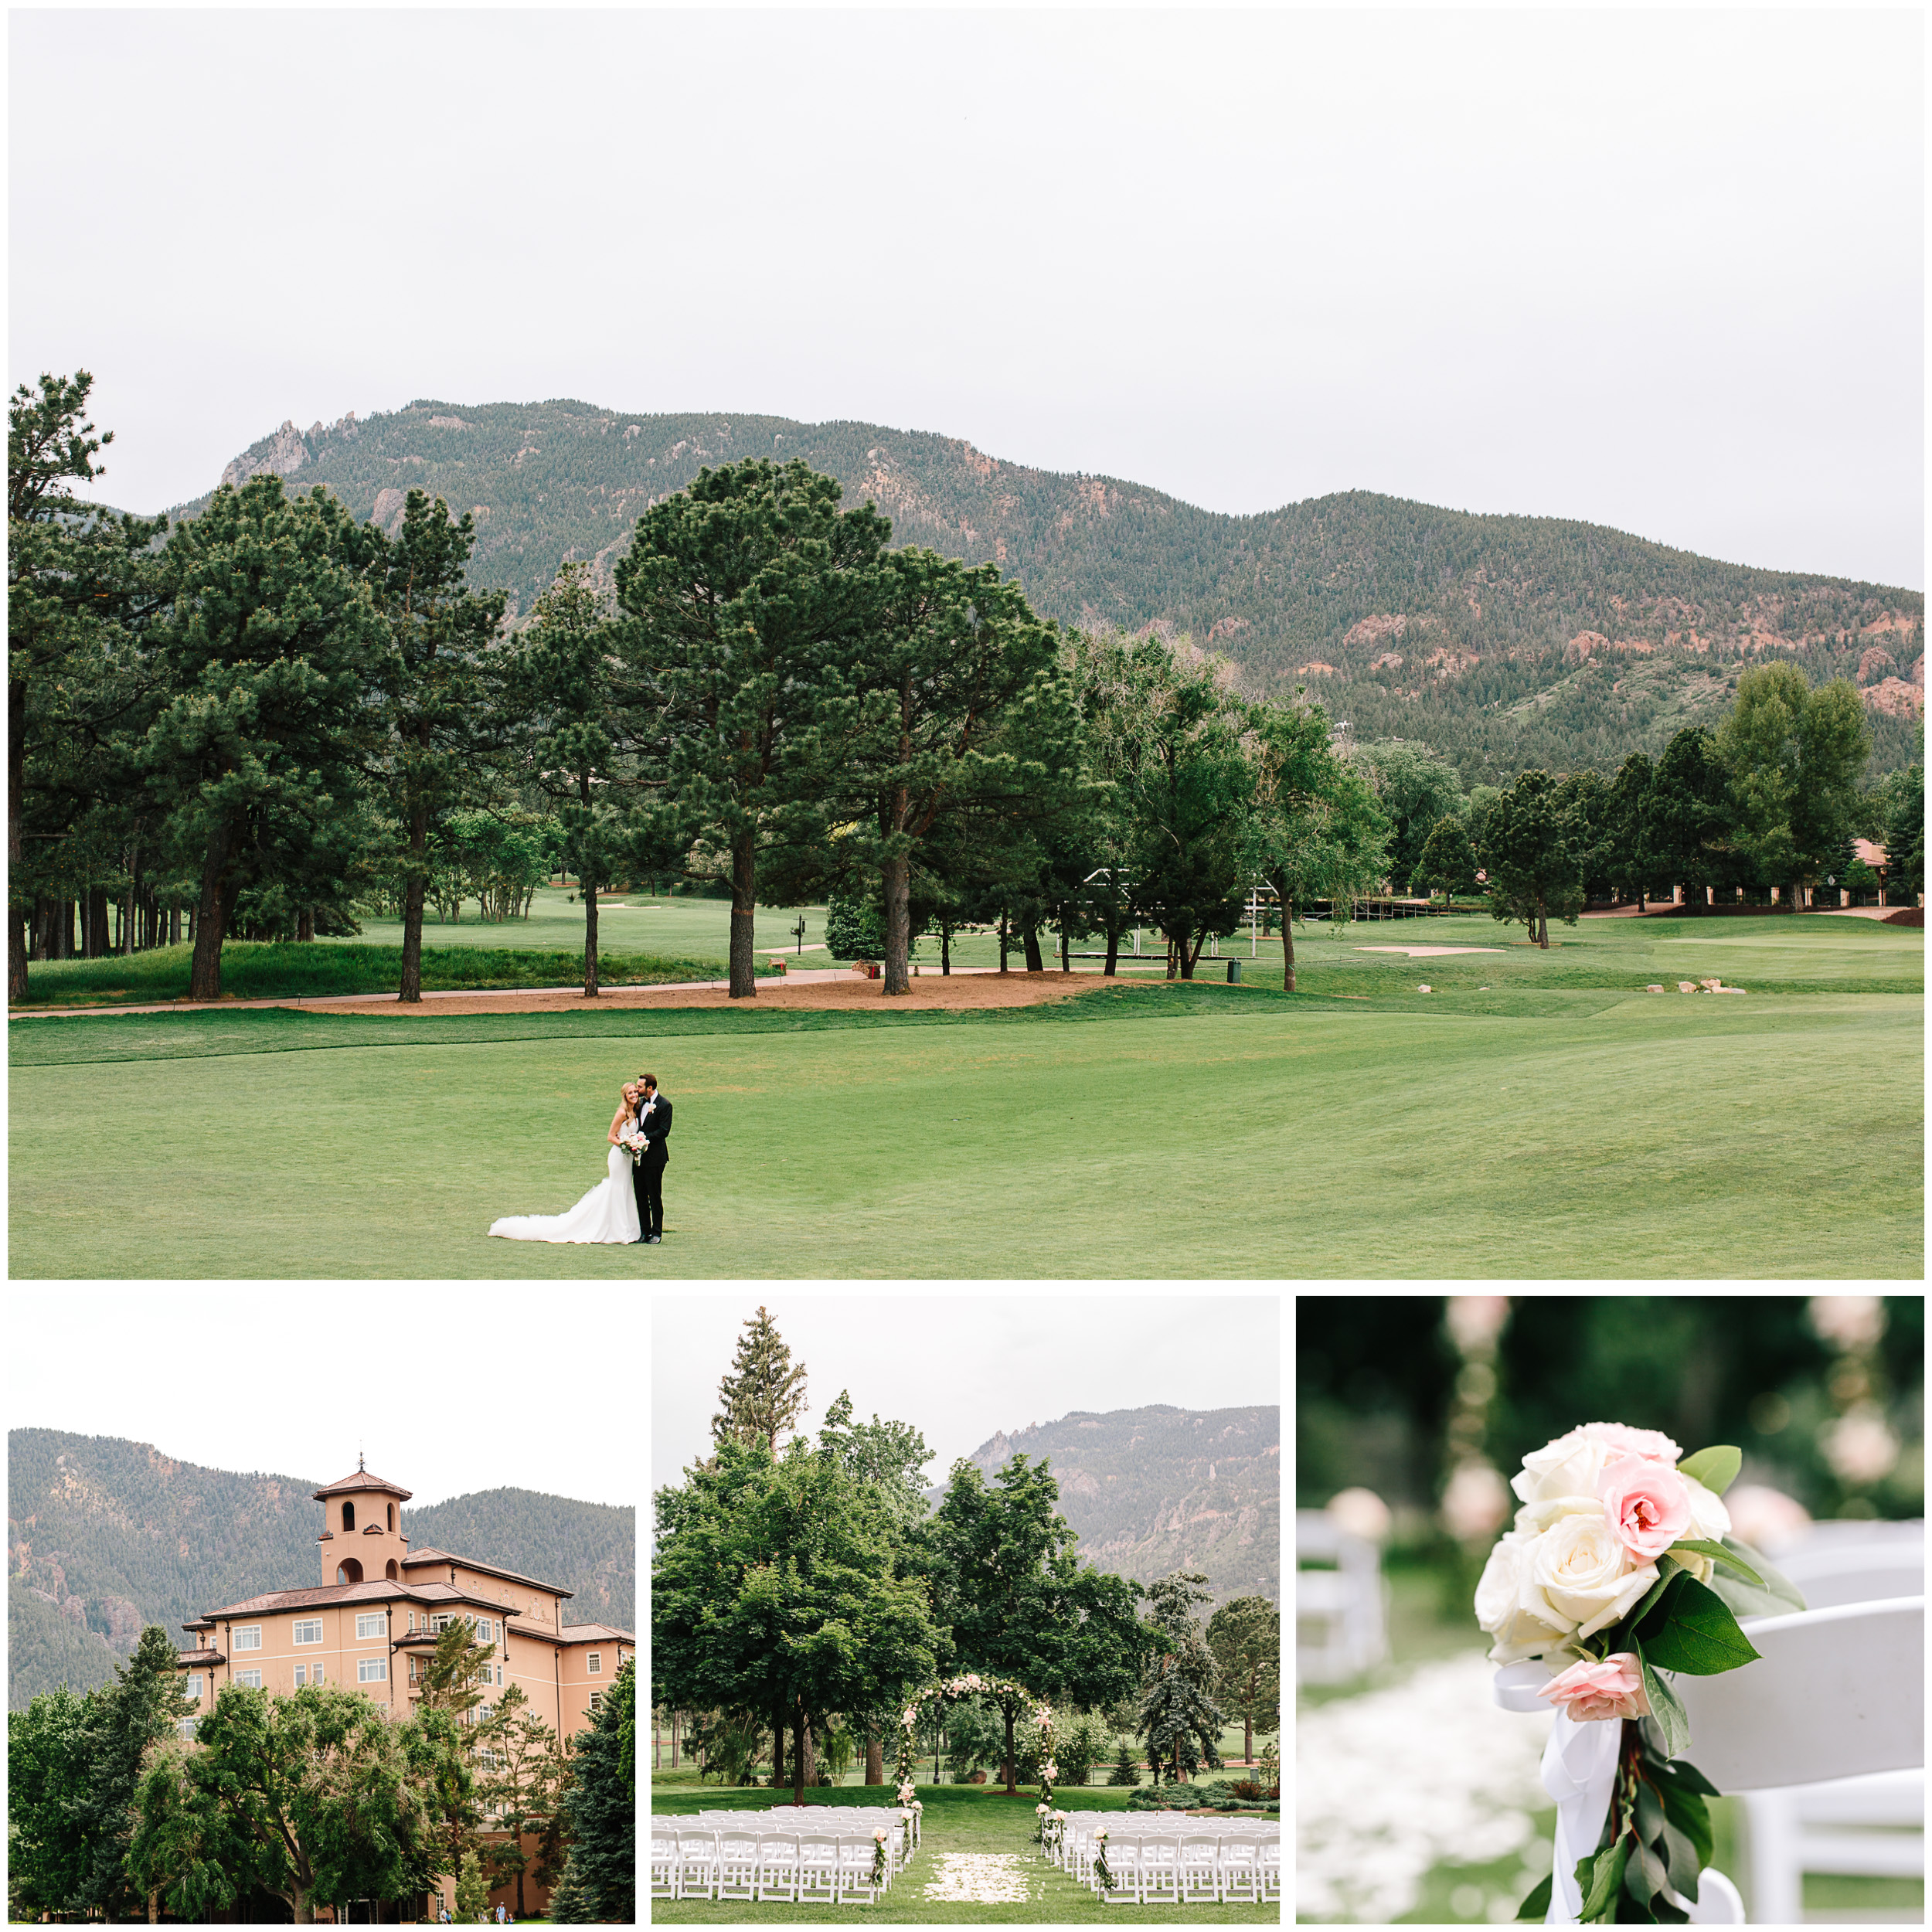 broadmoor_wedding_header.jpg